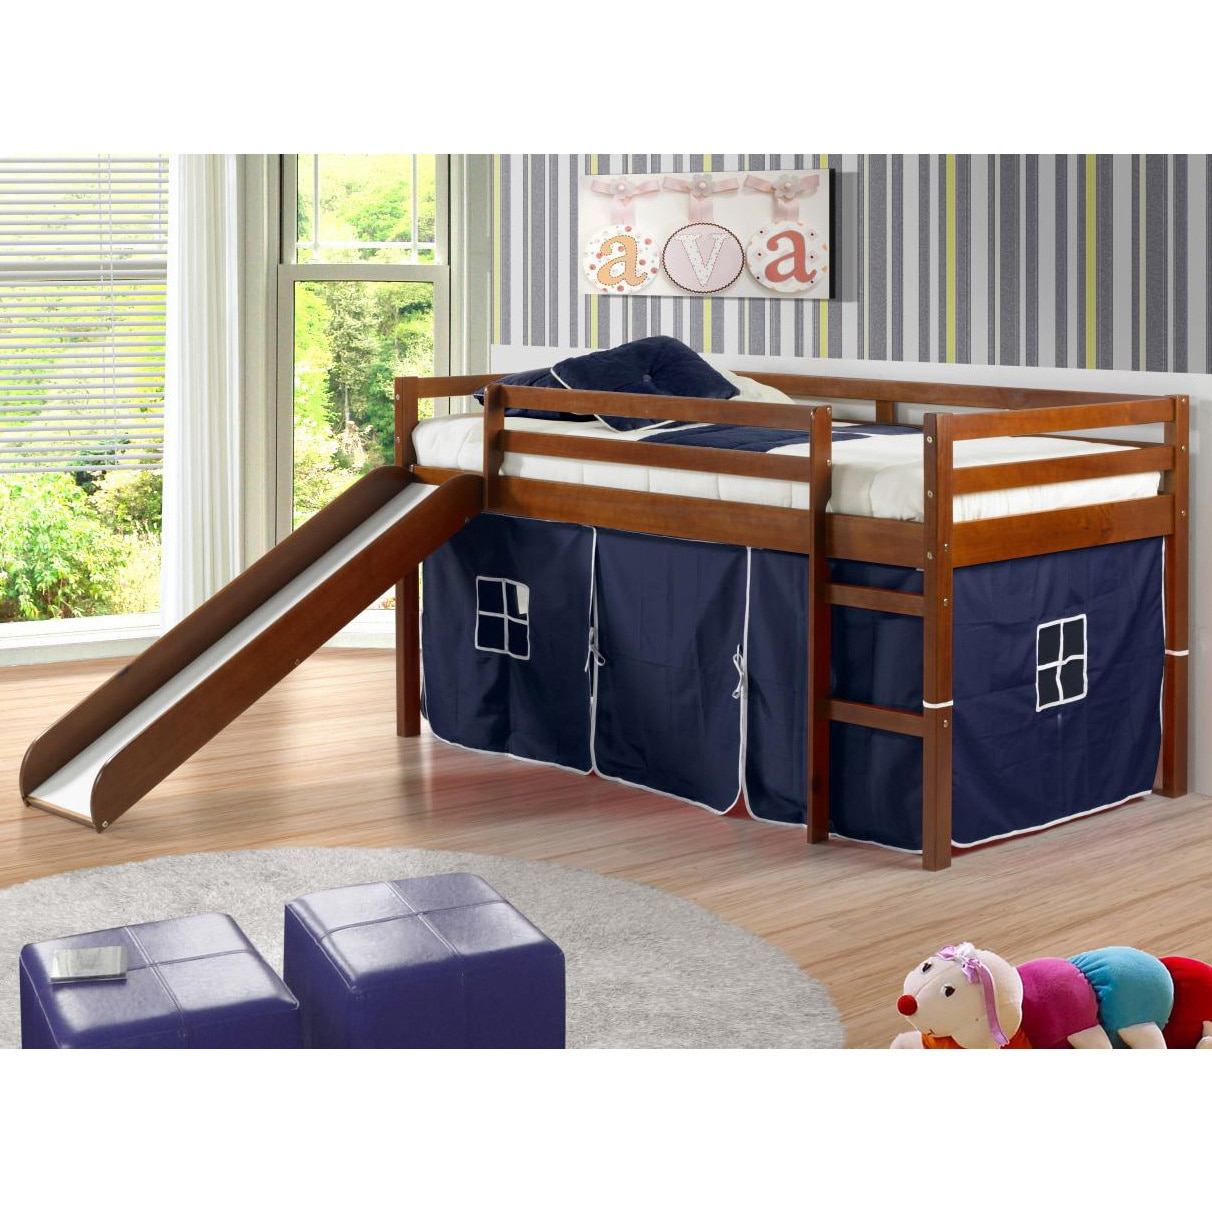 Shop Donco Kids Twin Size Tent Loft Bed With Slide On Sale